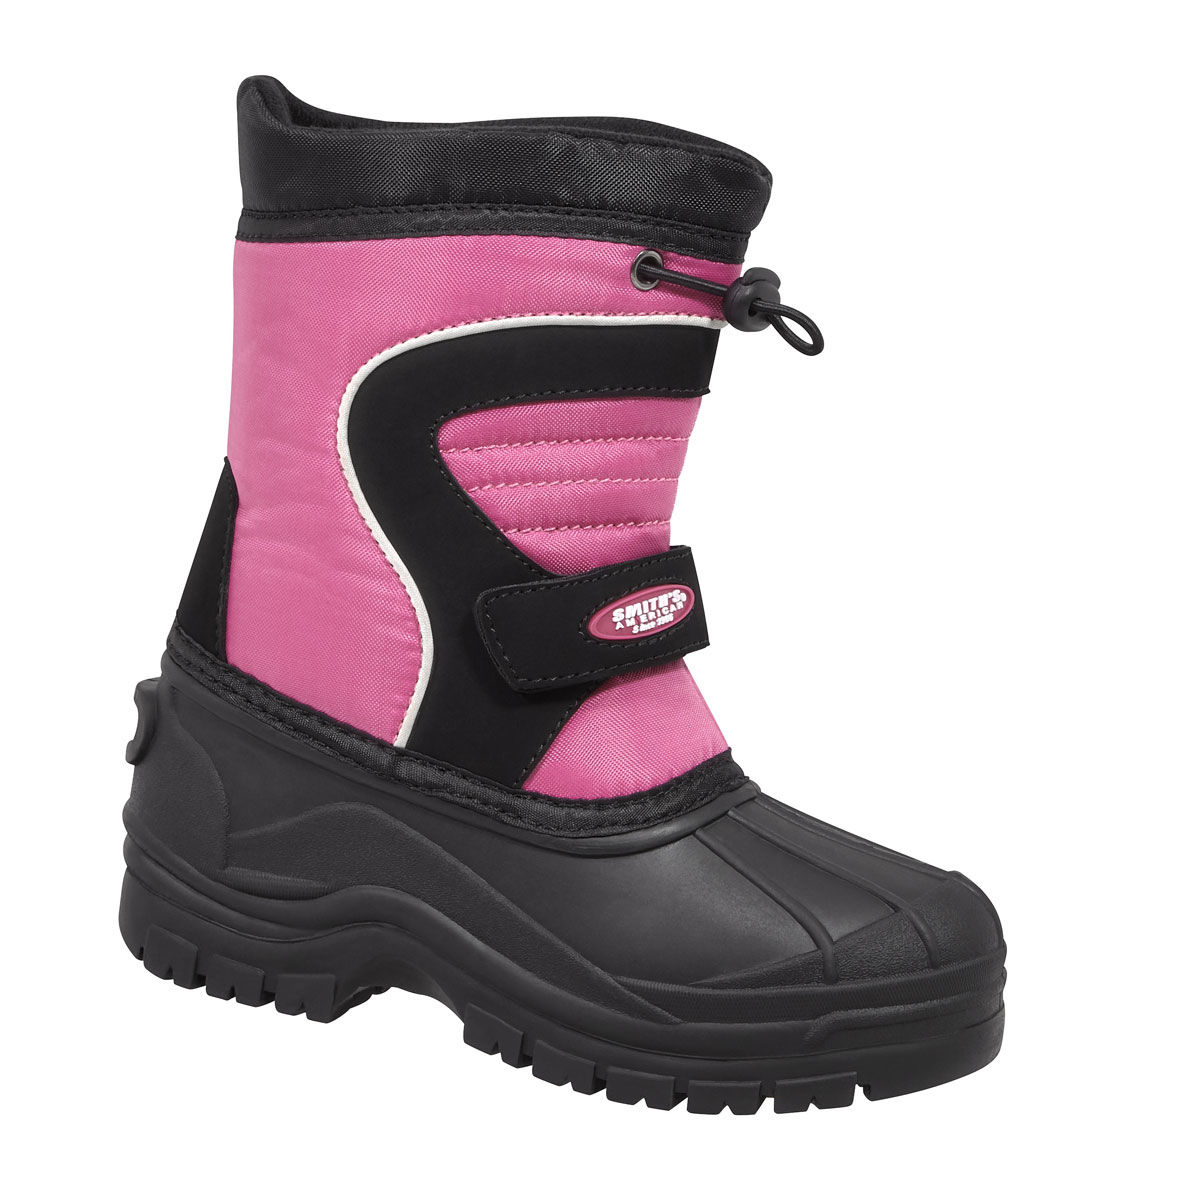 Smiths Val Girls Snow Boot